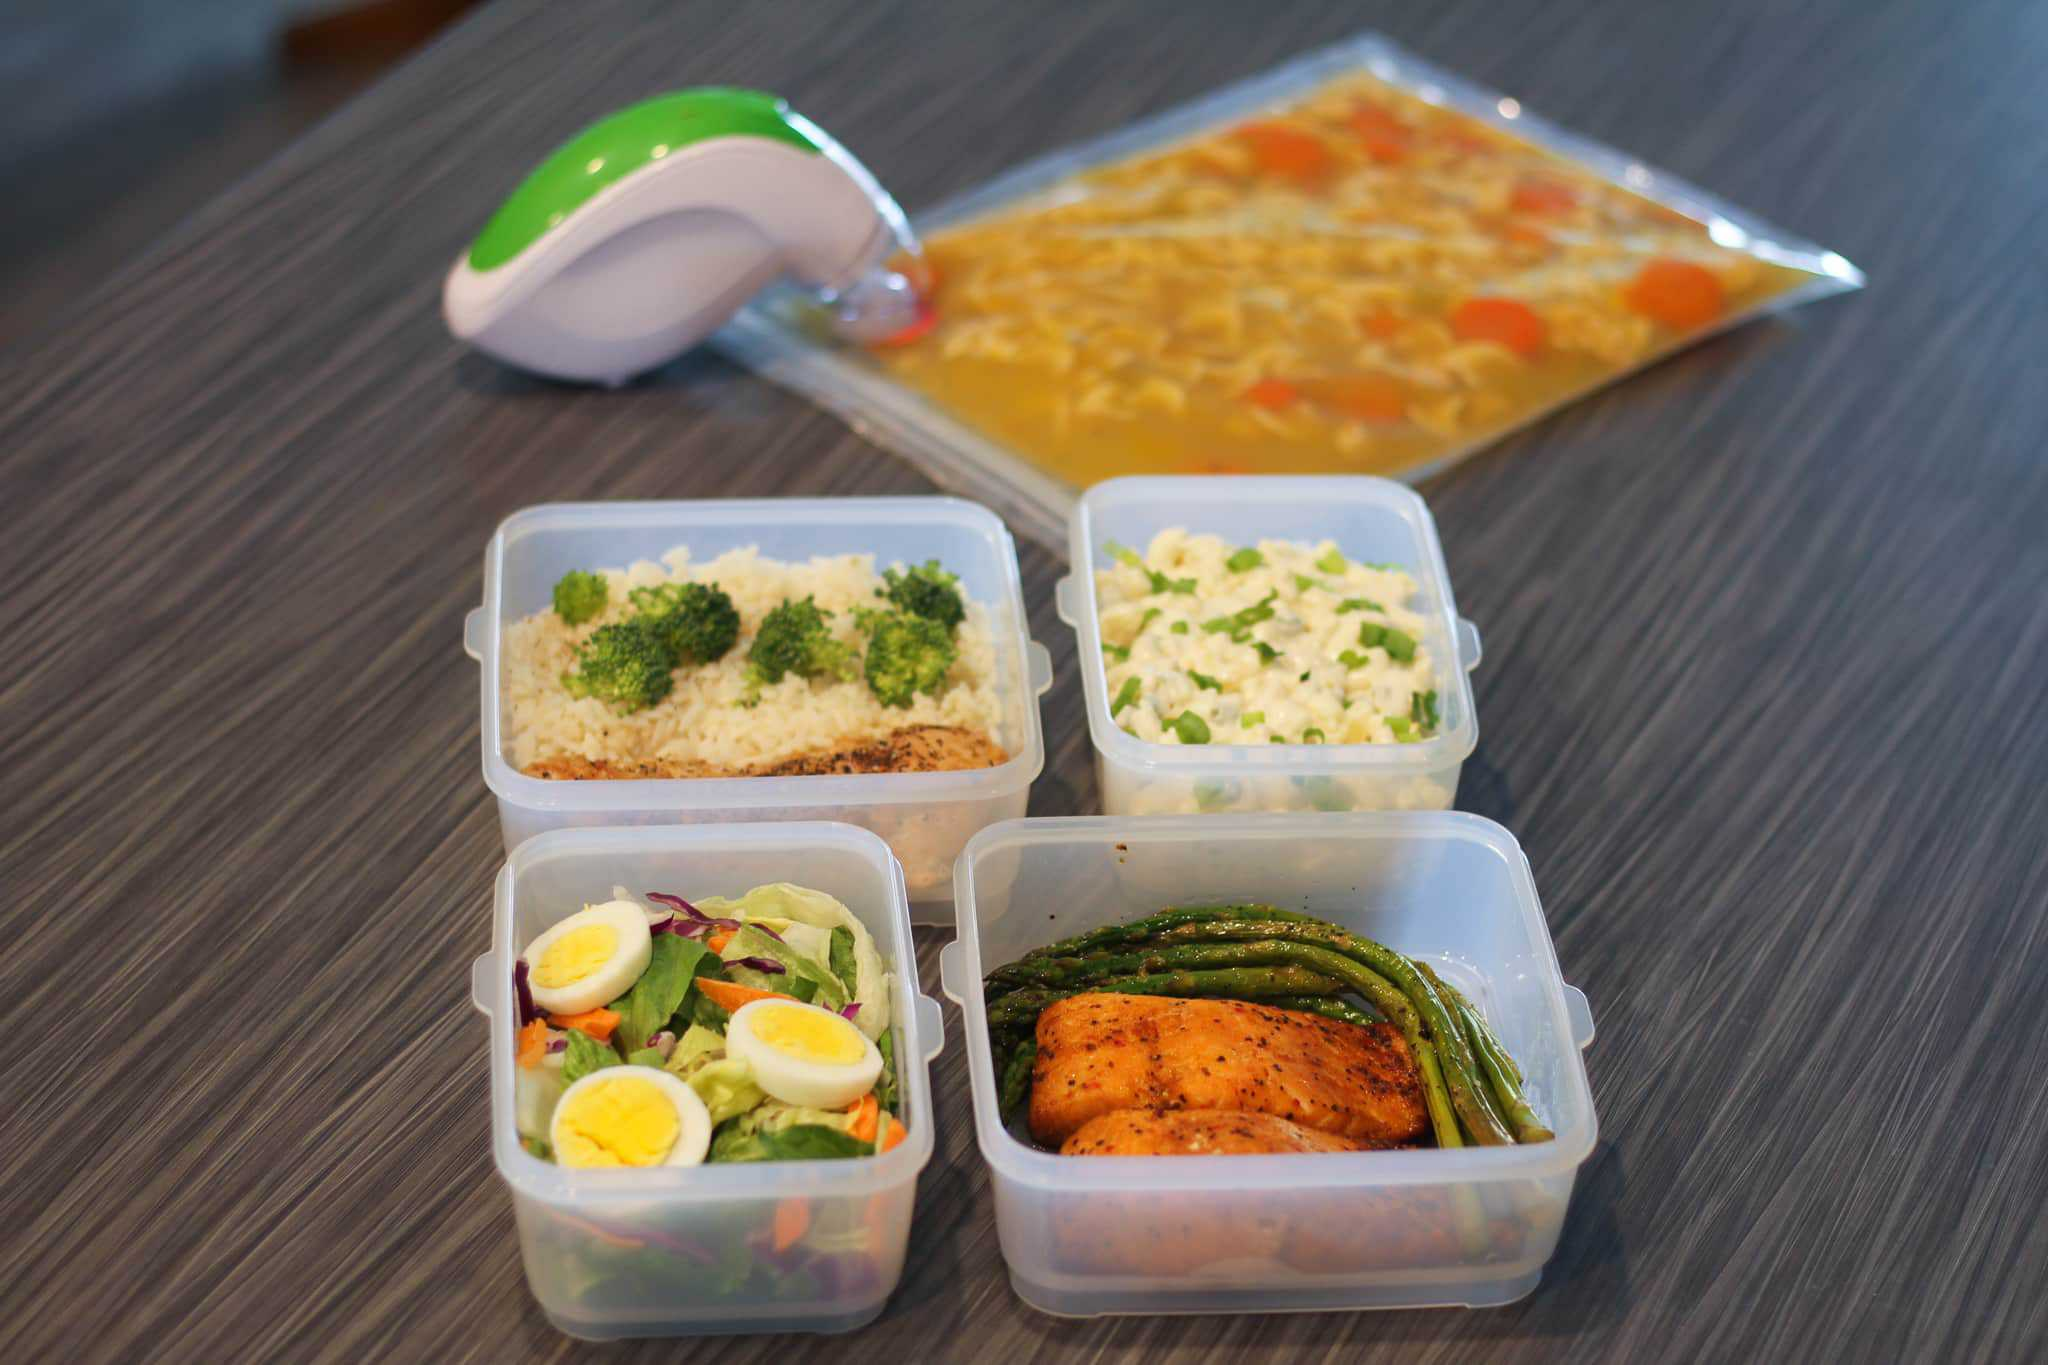 Enjoy more of your summer with easy meal prep